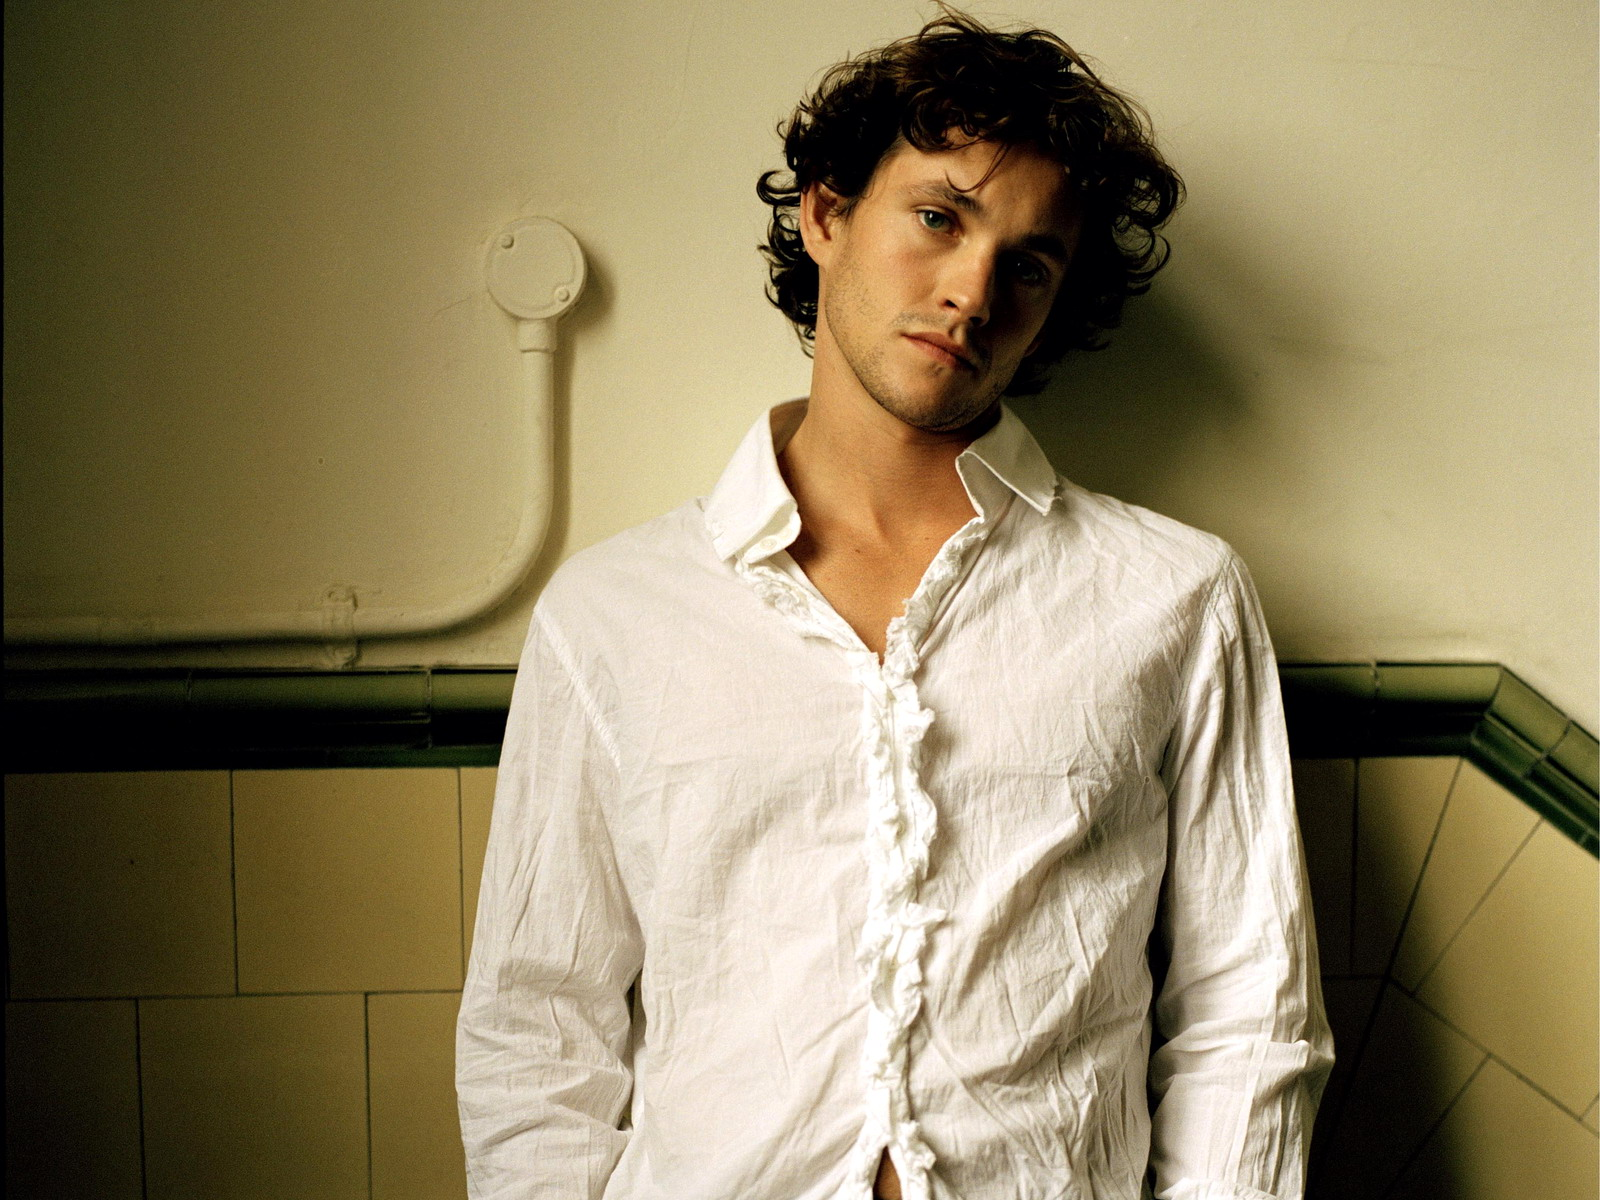 hugh dancy computer wallpaper 56269